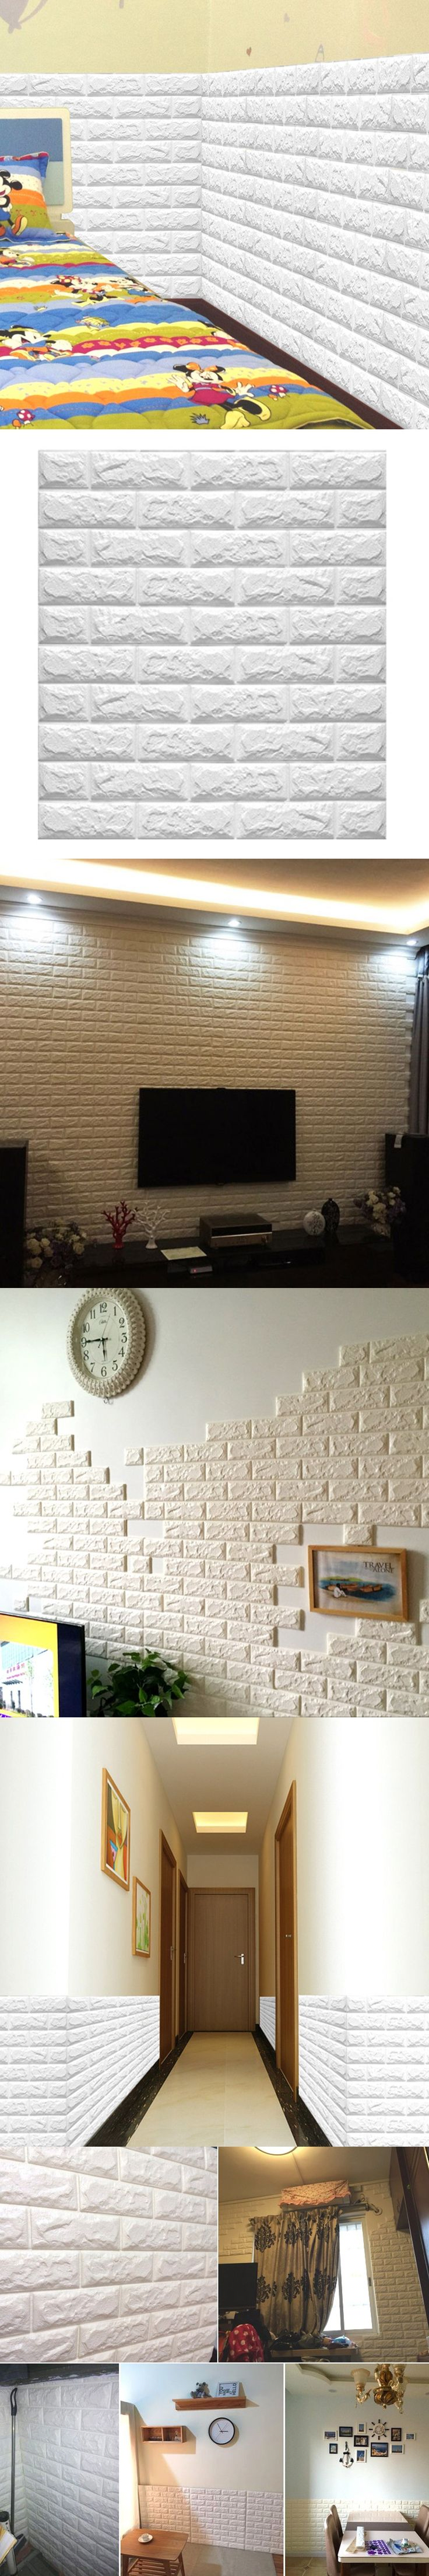 best 20 natural wall stickers ideas on pinterest scandinavian 60x60cm pe foam natural wall stickers patterns 3d wallpaper diy wall decor brick for living room